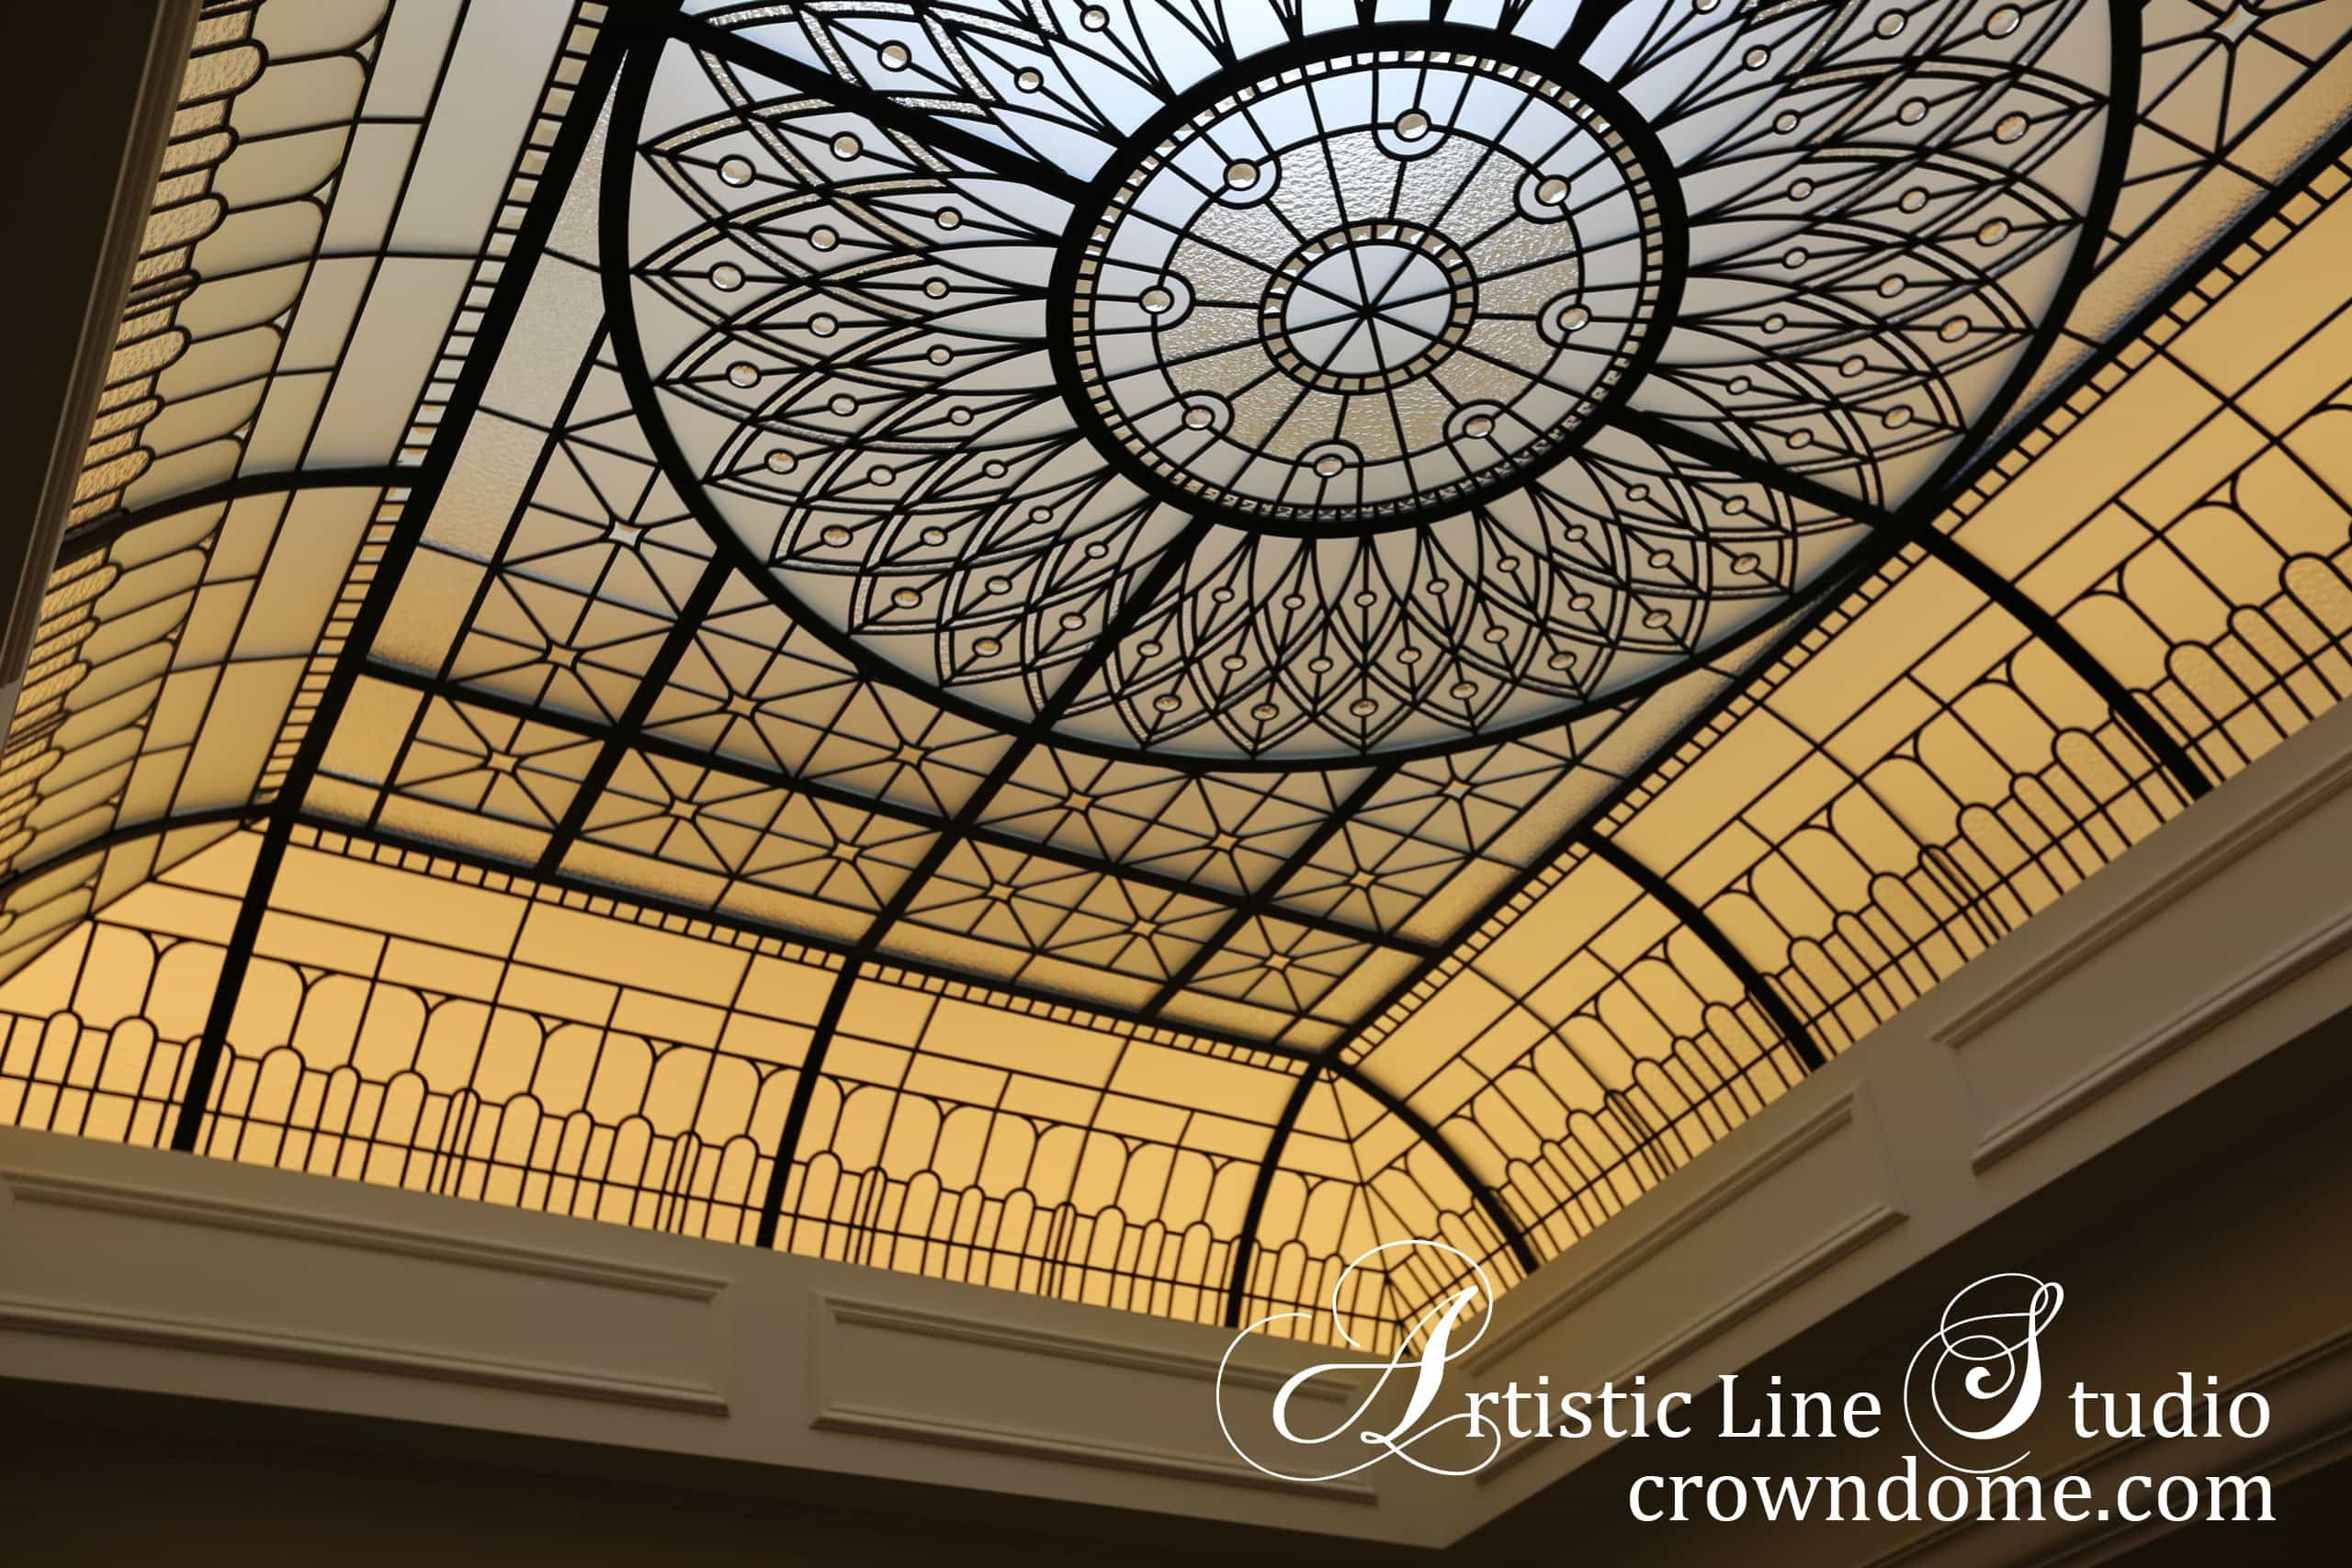 Leaded glass skylight with clear textured glass, bevelled glass and jewels in night lighting. Night illumination emphasizes the glass ceiling beauty